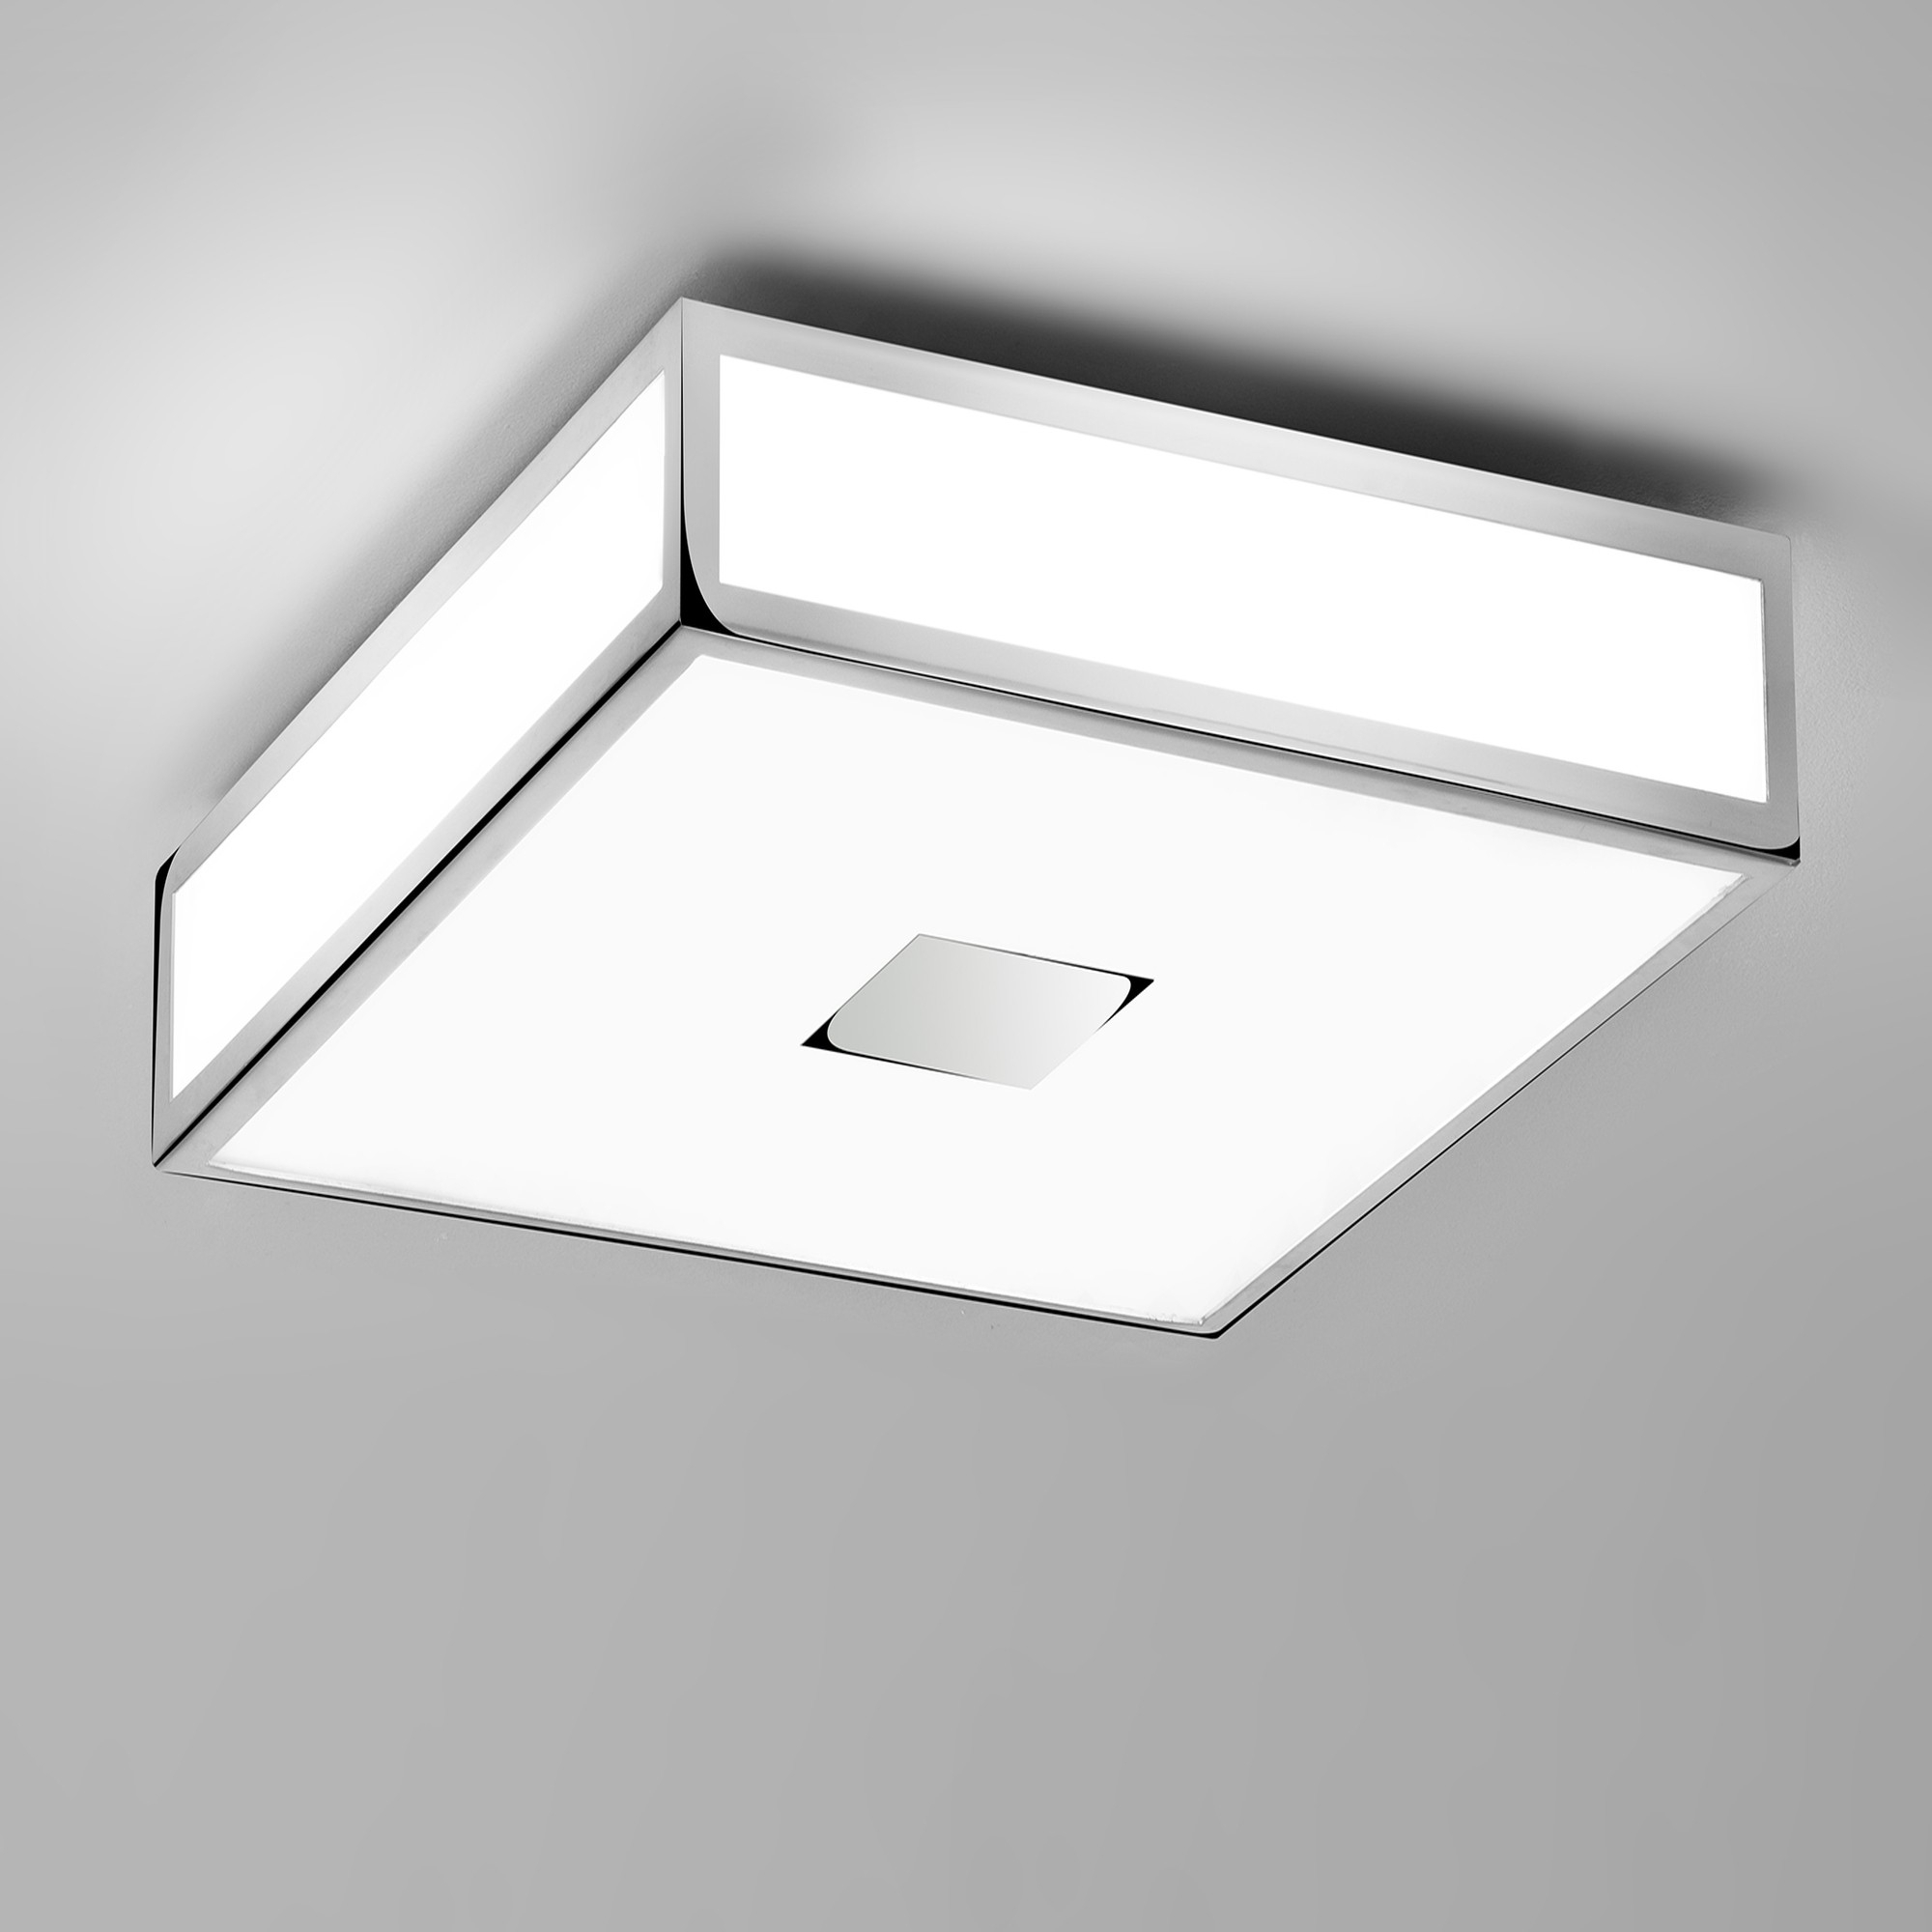 Decorating : Outdoor Ceiling Light For Boats Led 00599Wh Aaa World Intended For Modern Outdoor Ceiling Lights (#6 of 15)